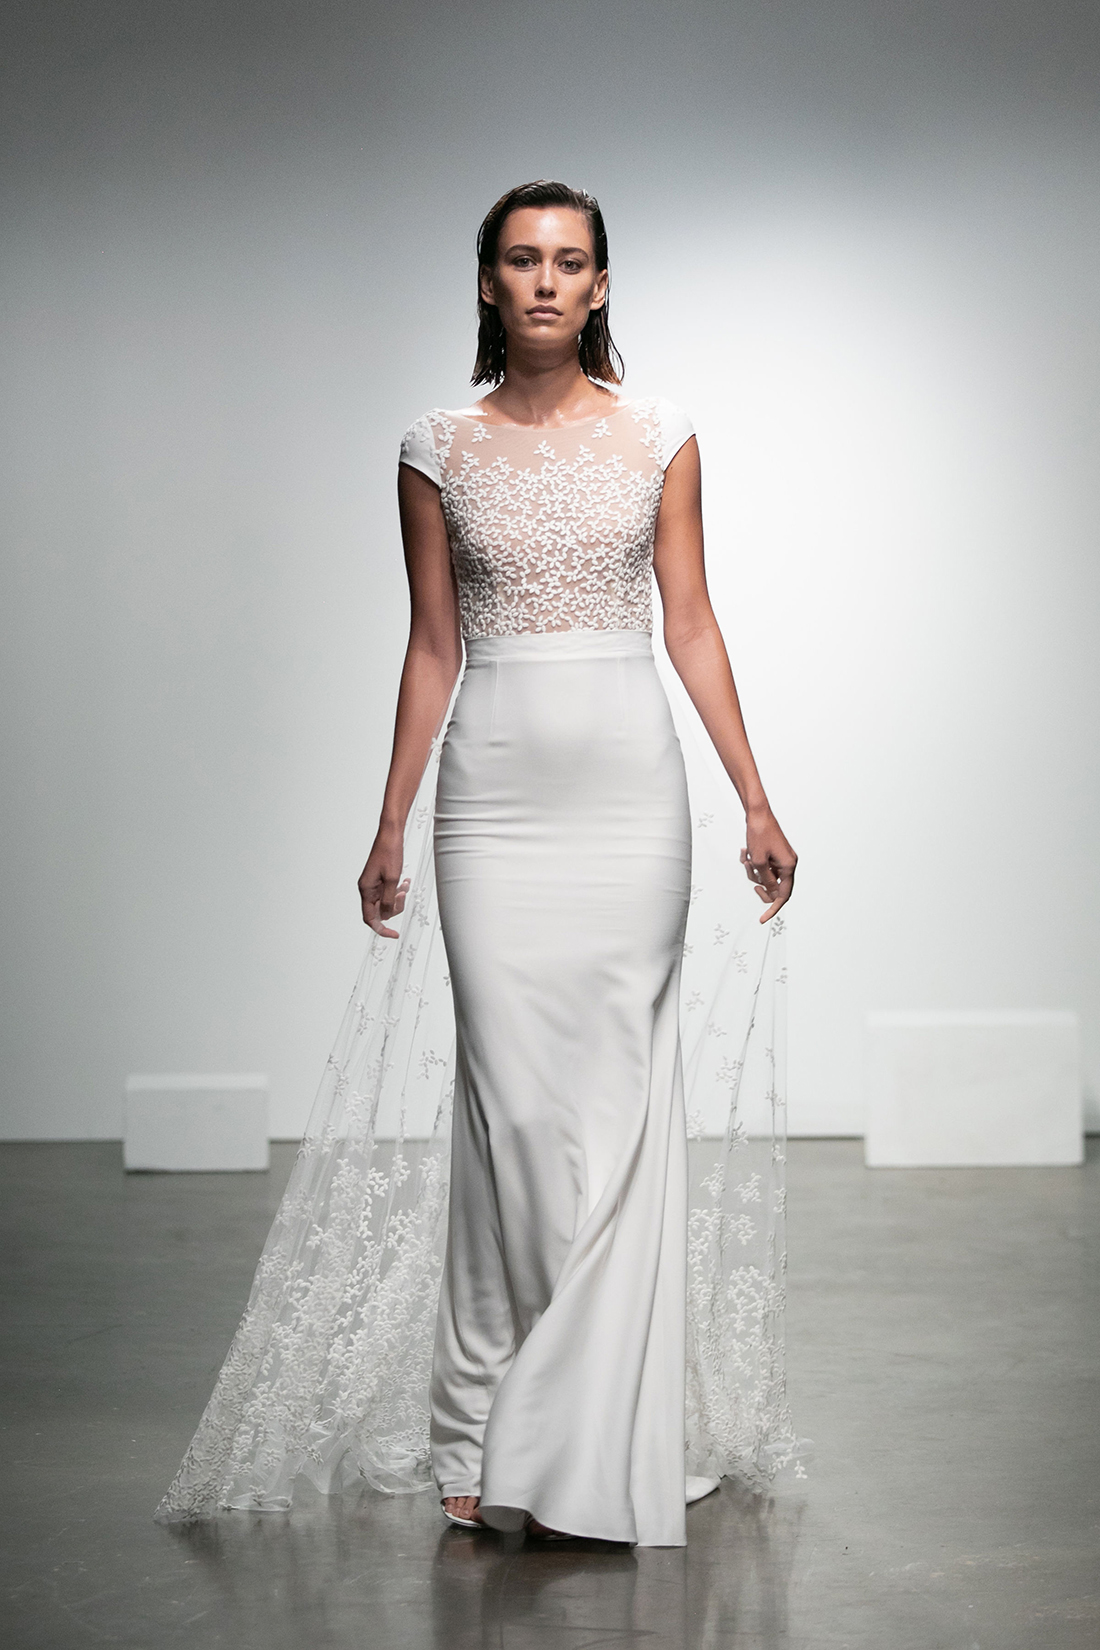 rime arodaky fall 2019 mermaid illusion high neck cap sleeve floral applique sheer train